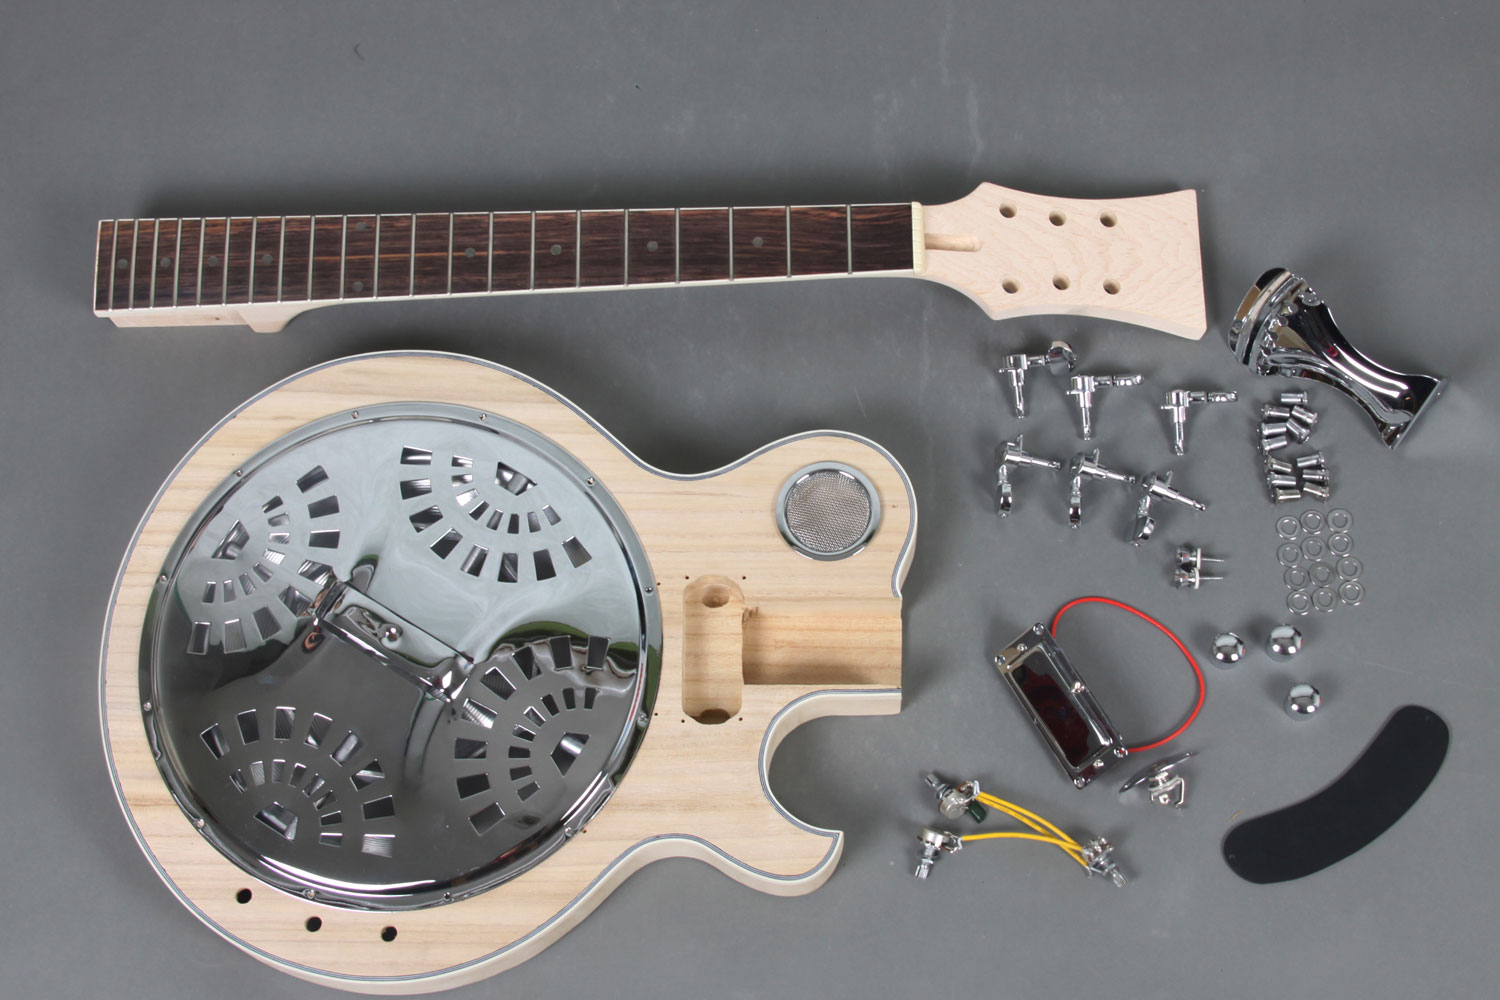 resonator guitar wiring diagram resonator image resonators guitar diy guitar kit metallic guitar gk sdo 10 on resonator guitar wiring diagram